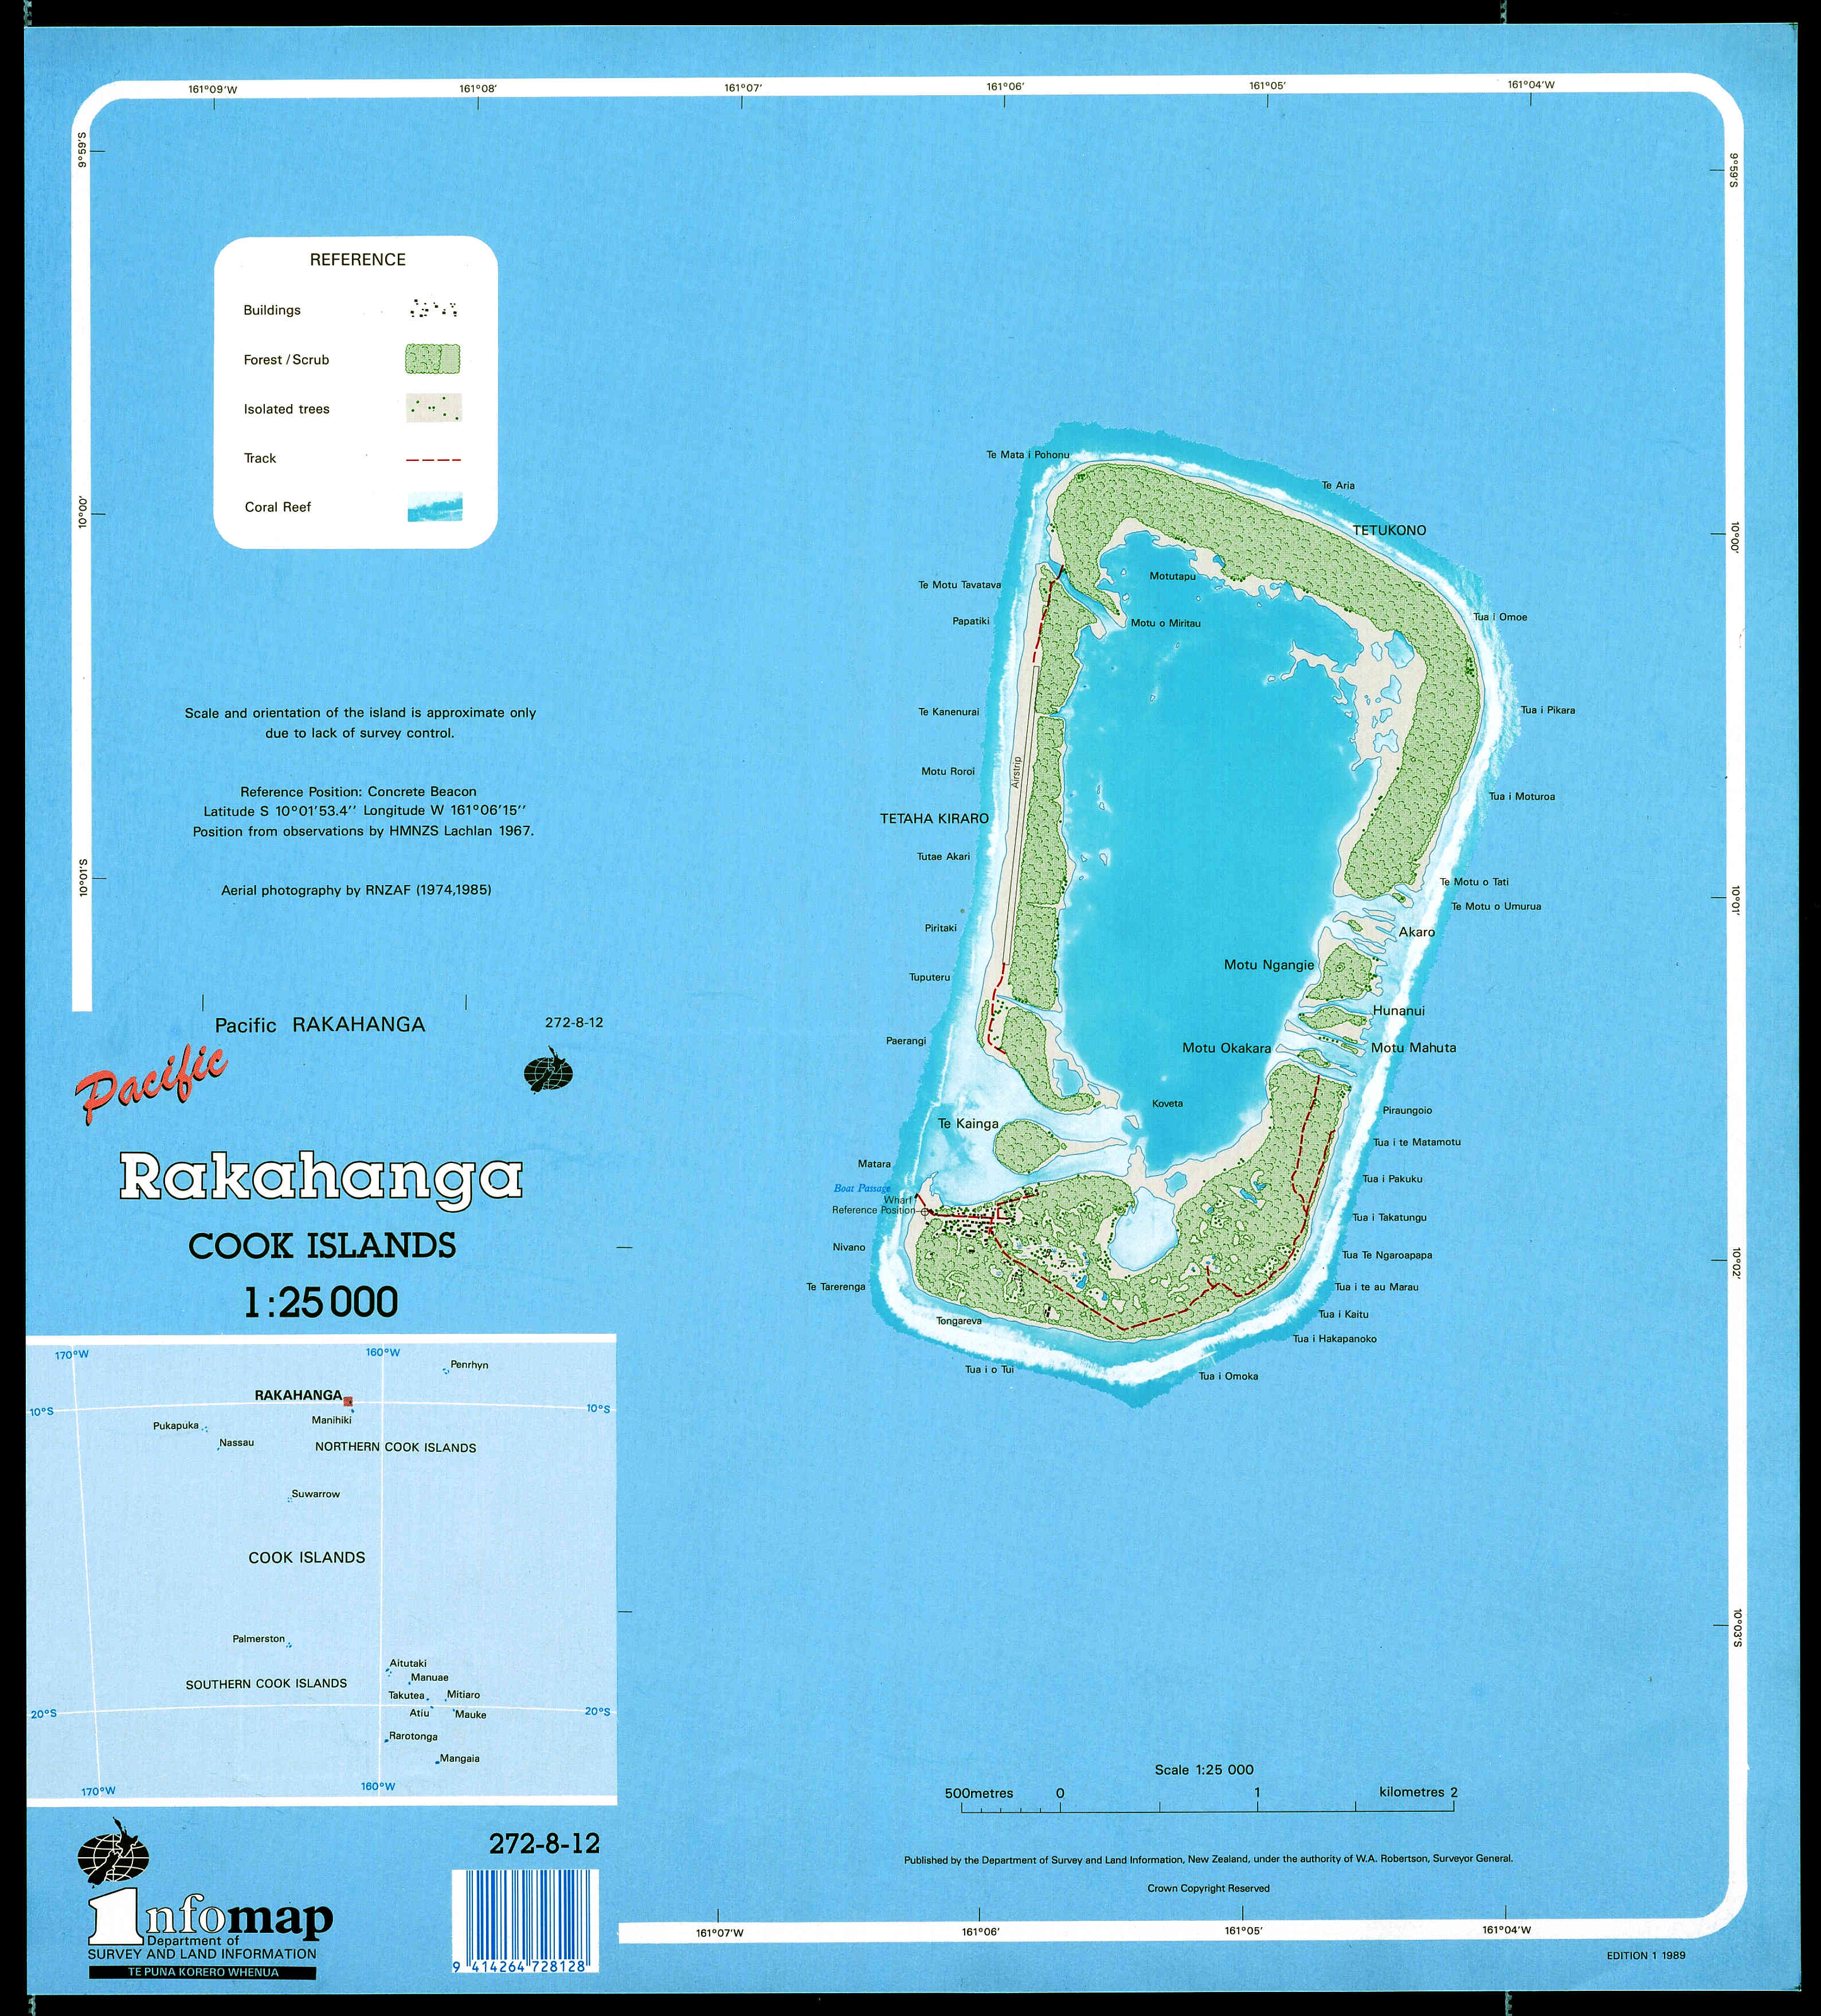 Maps Of The Cook Islands Cartes Des Iles Cook - How to hang a large map